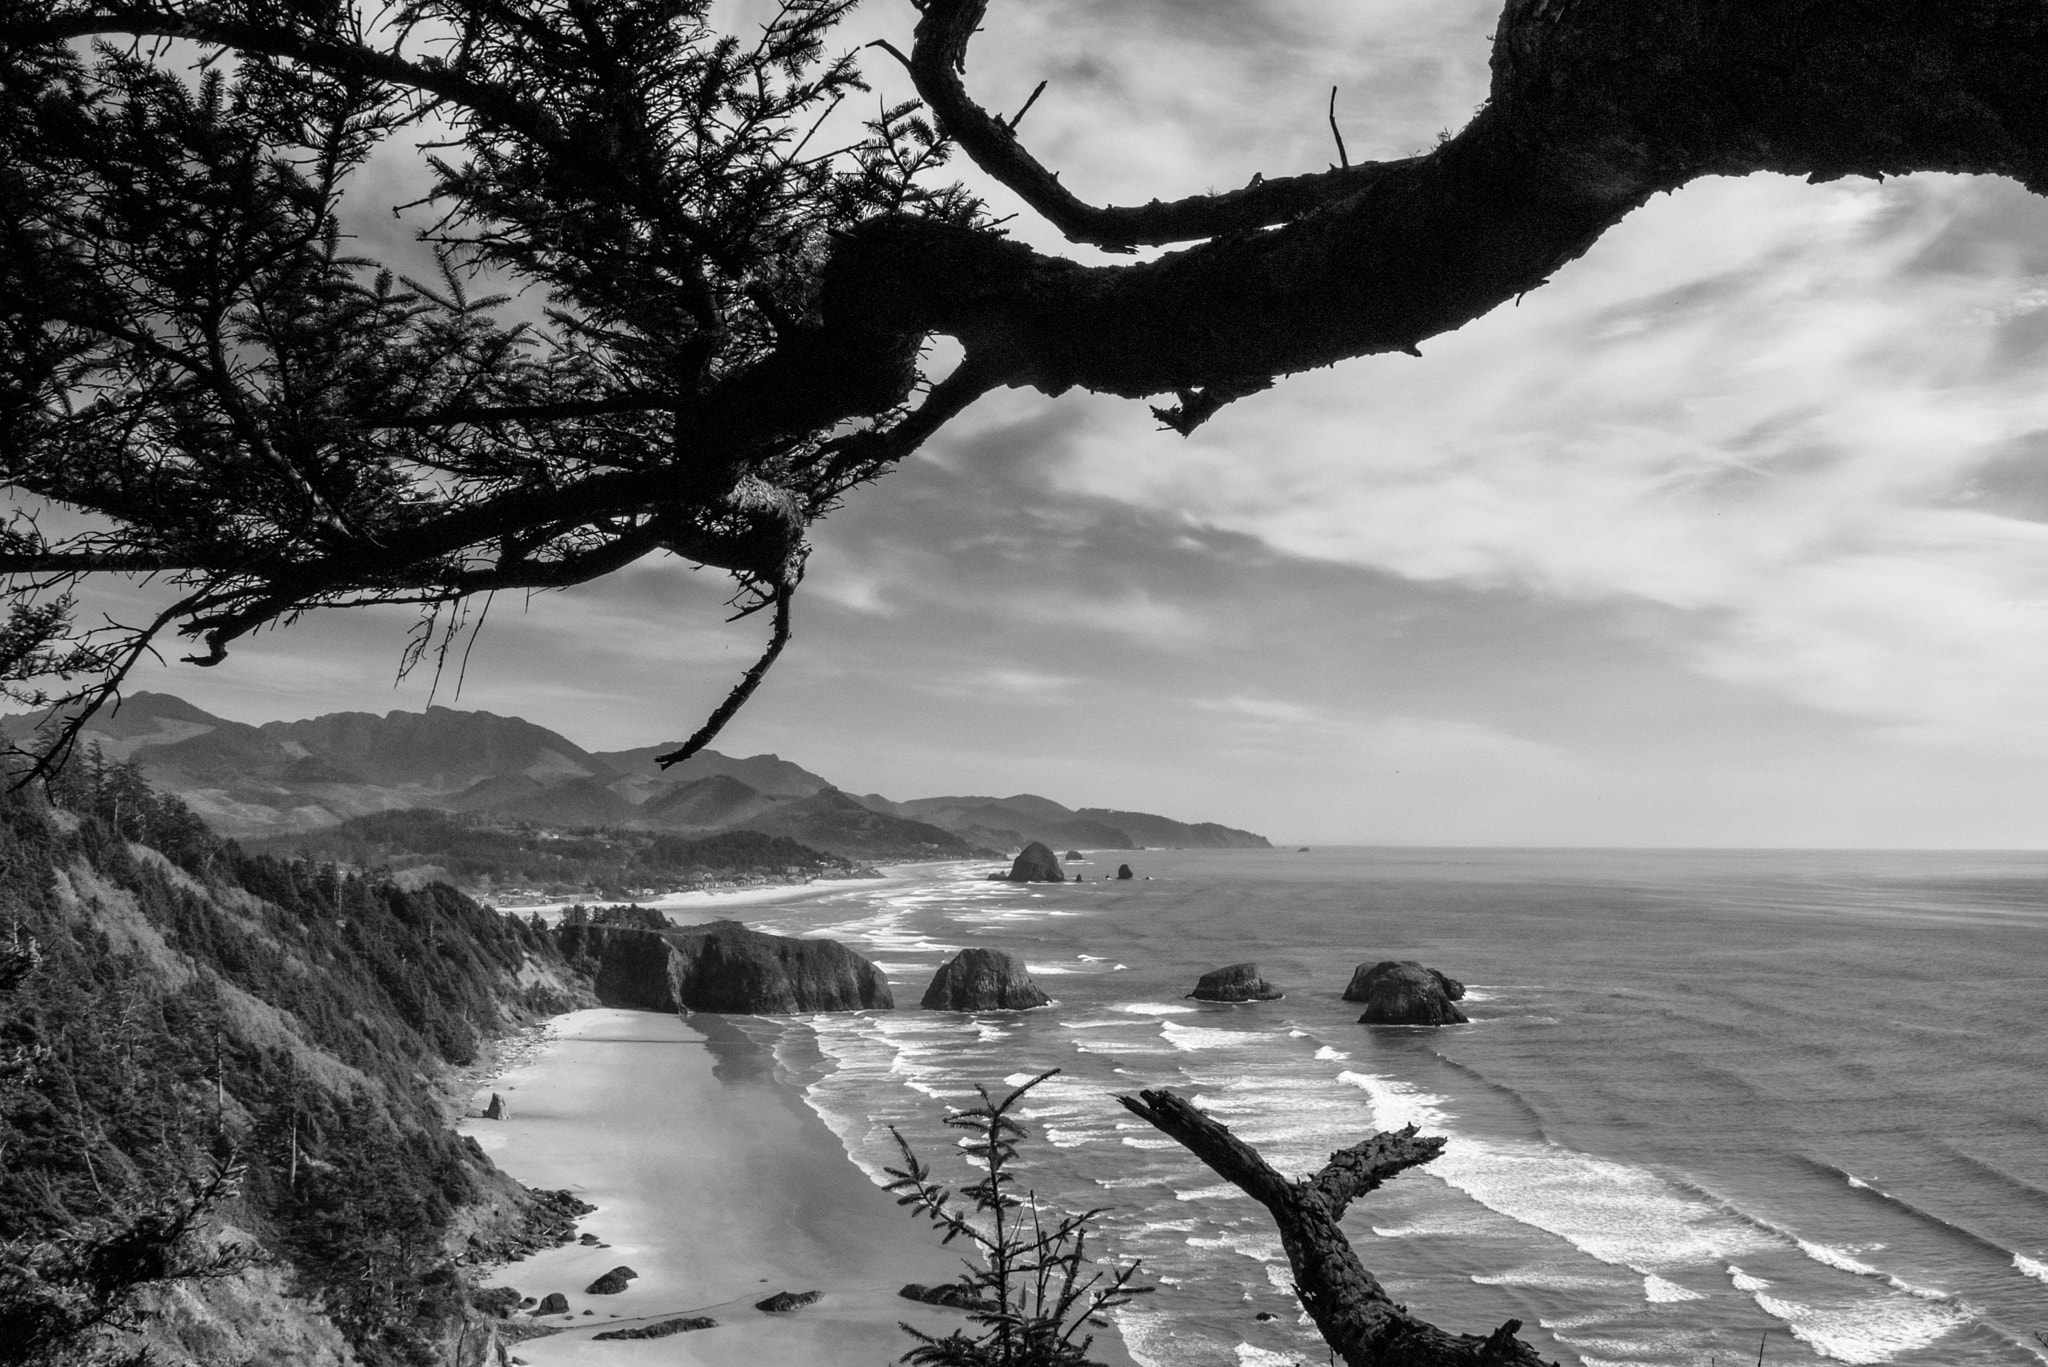 Photograph Oregon Coast by Keith Skelton on 500px